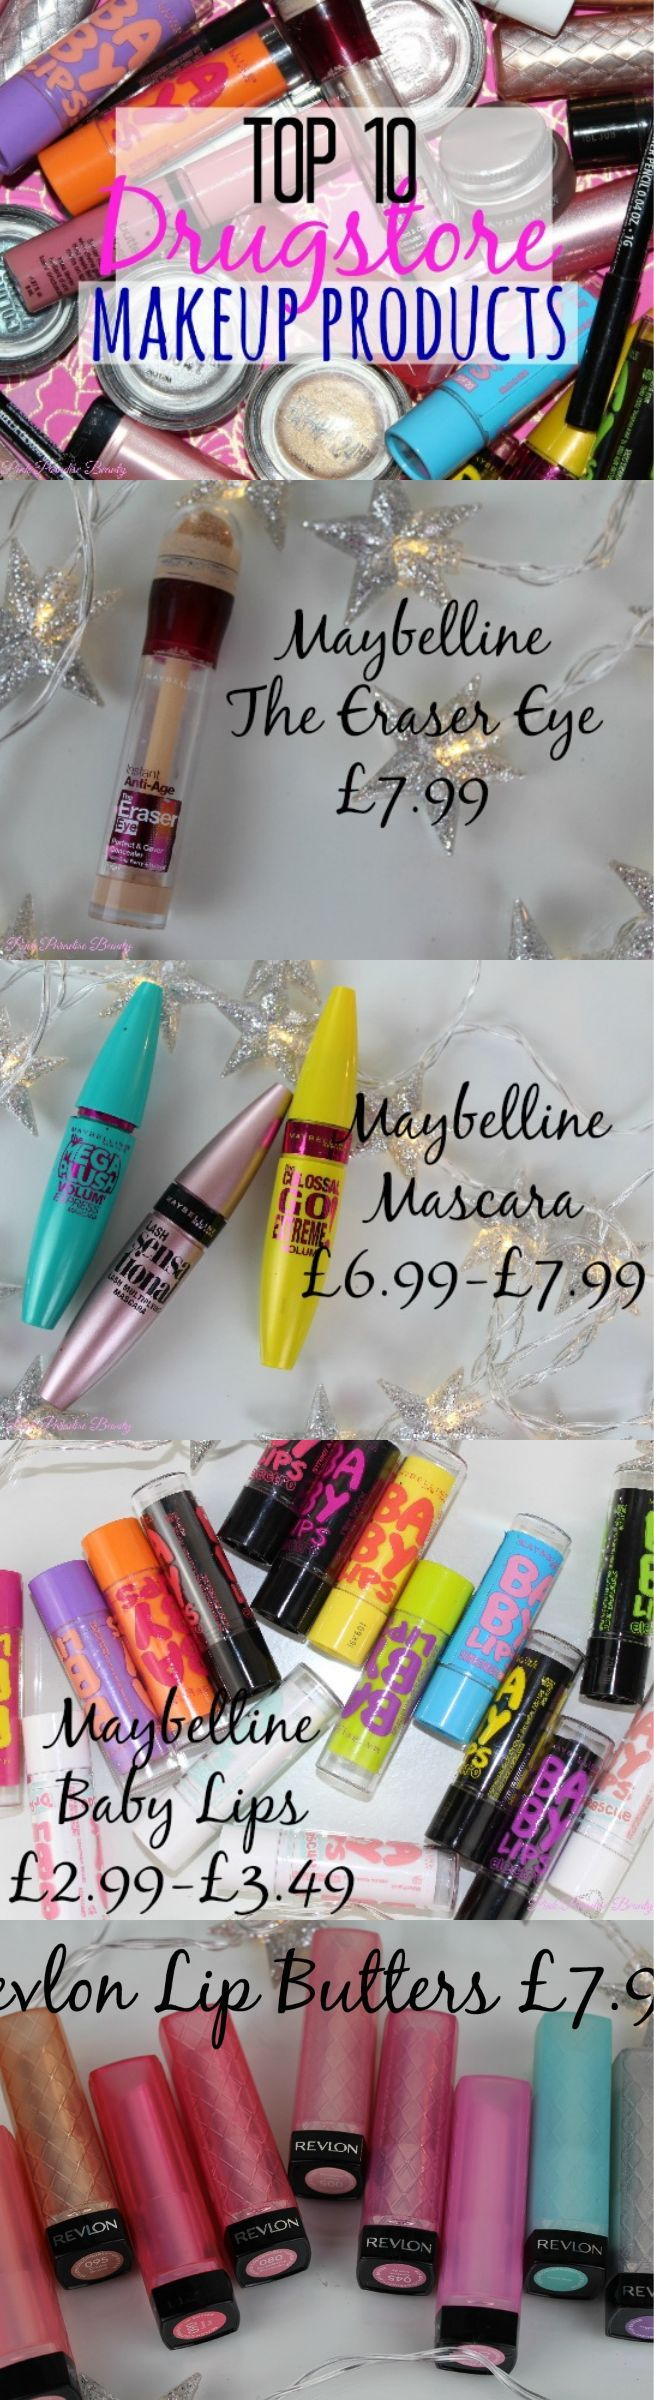 Top 10 Drugstore Makeup Products featuring Maybelline and